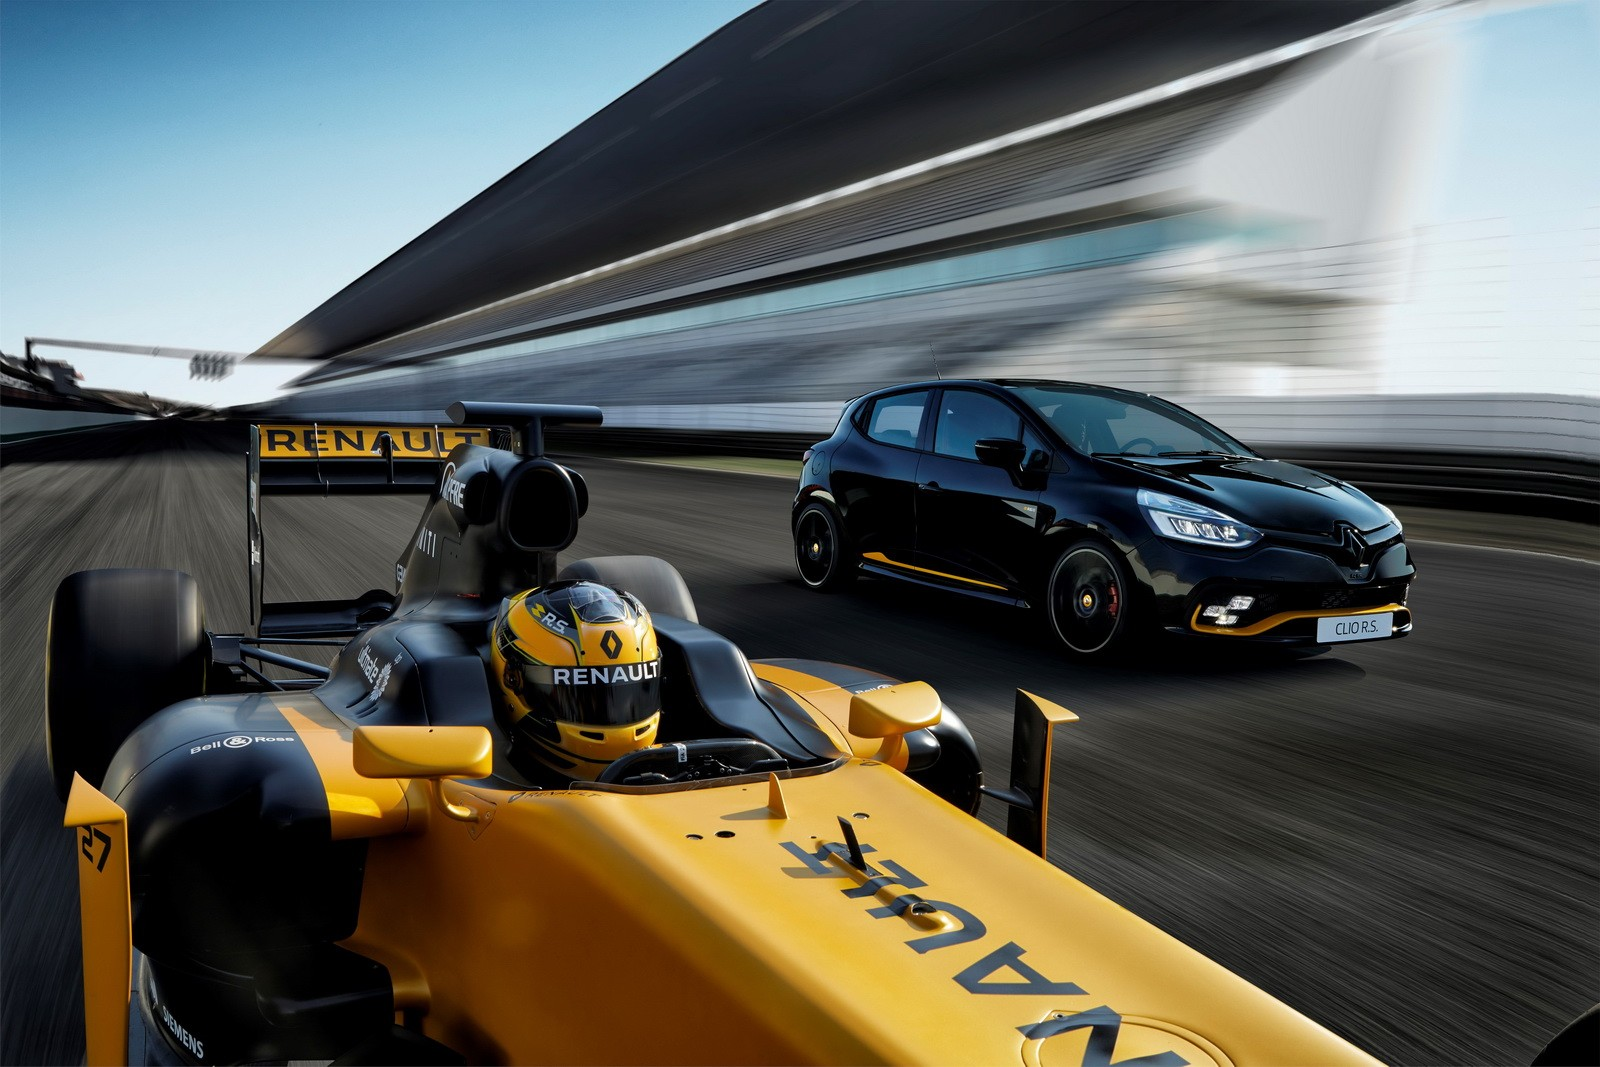 Renault Clio RS 18 Adds F1 Theme for Special Edition